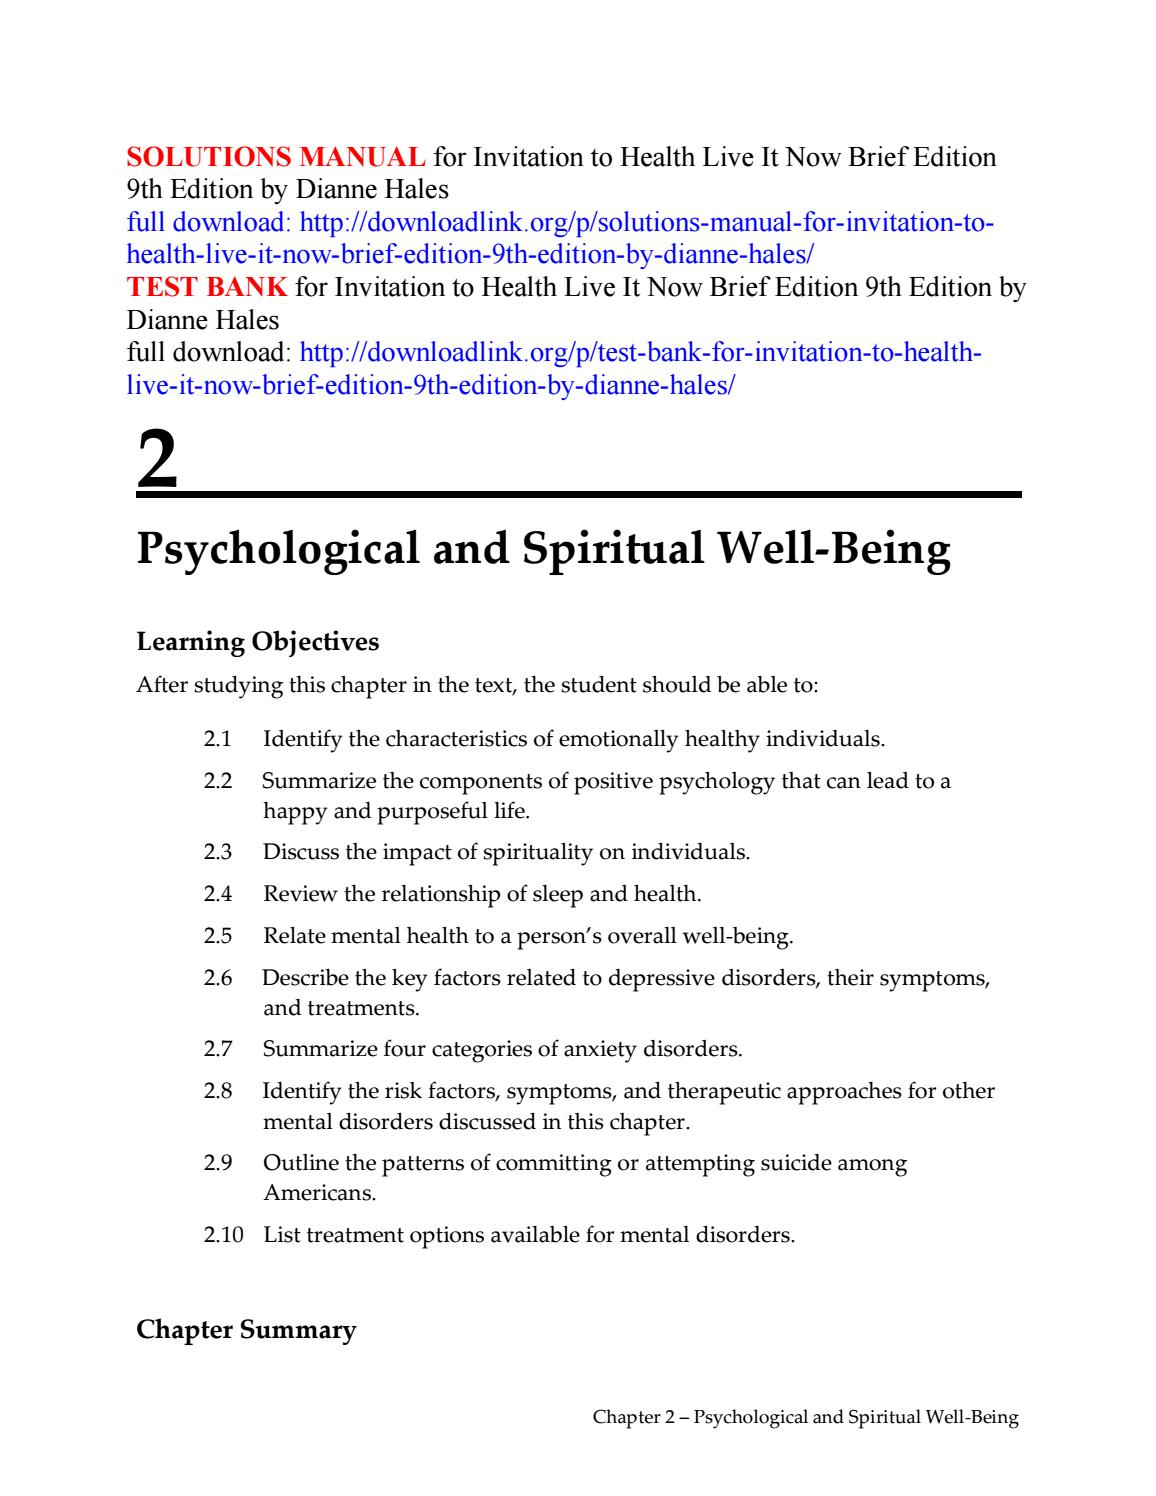 Solutions Manual For Invitation To Health Live Brief